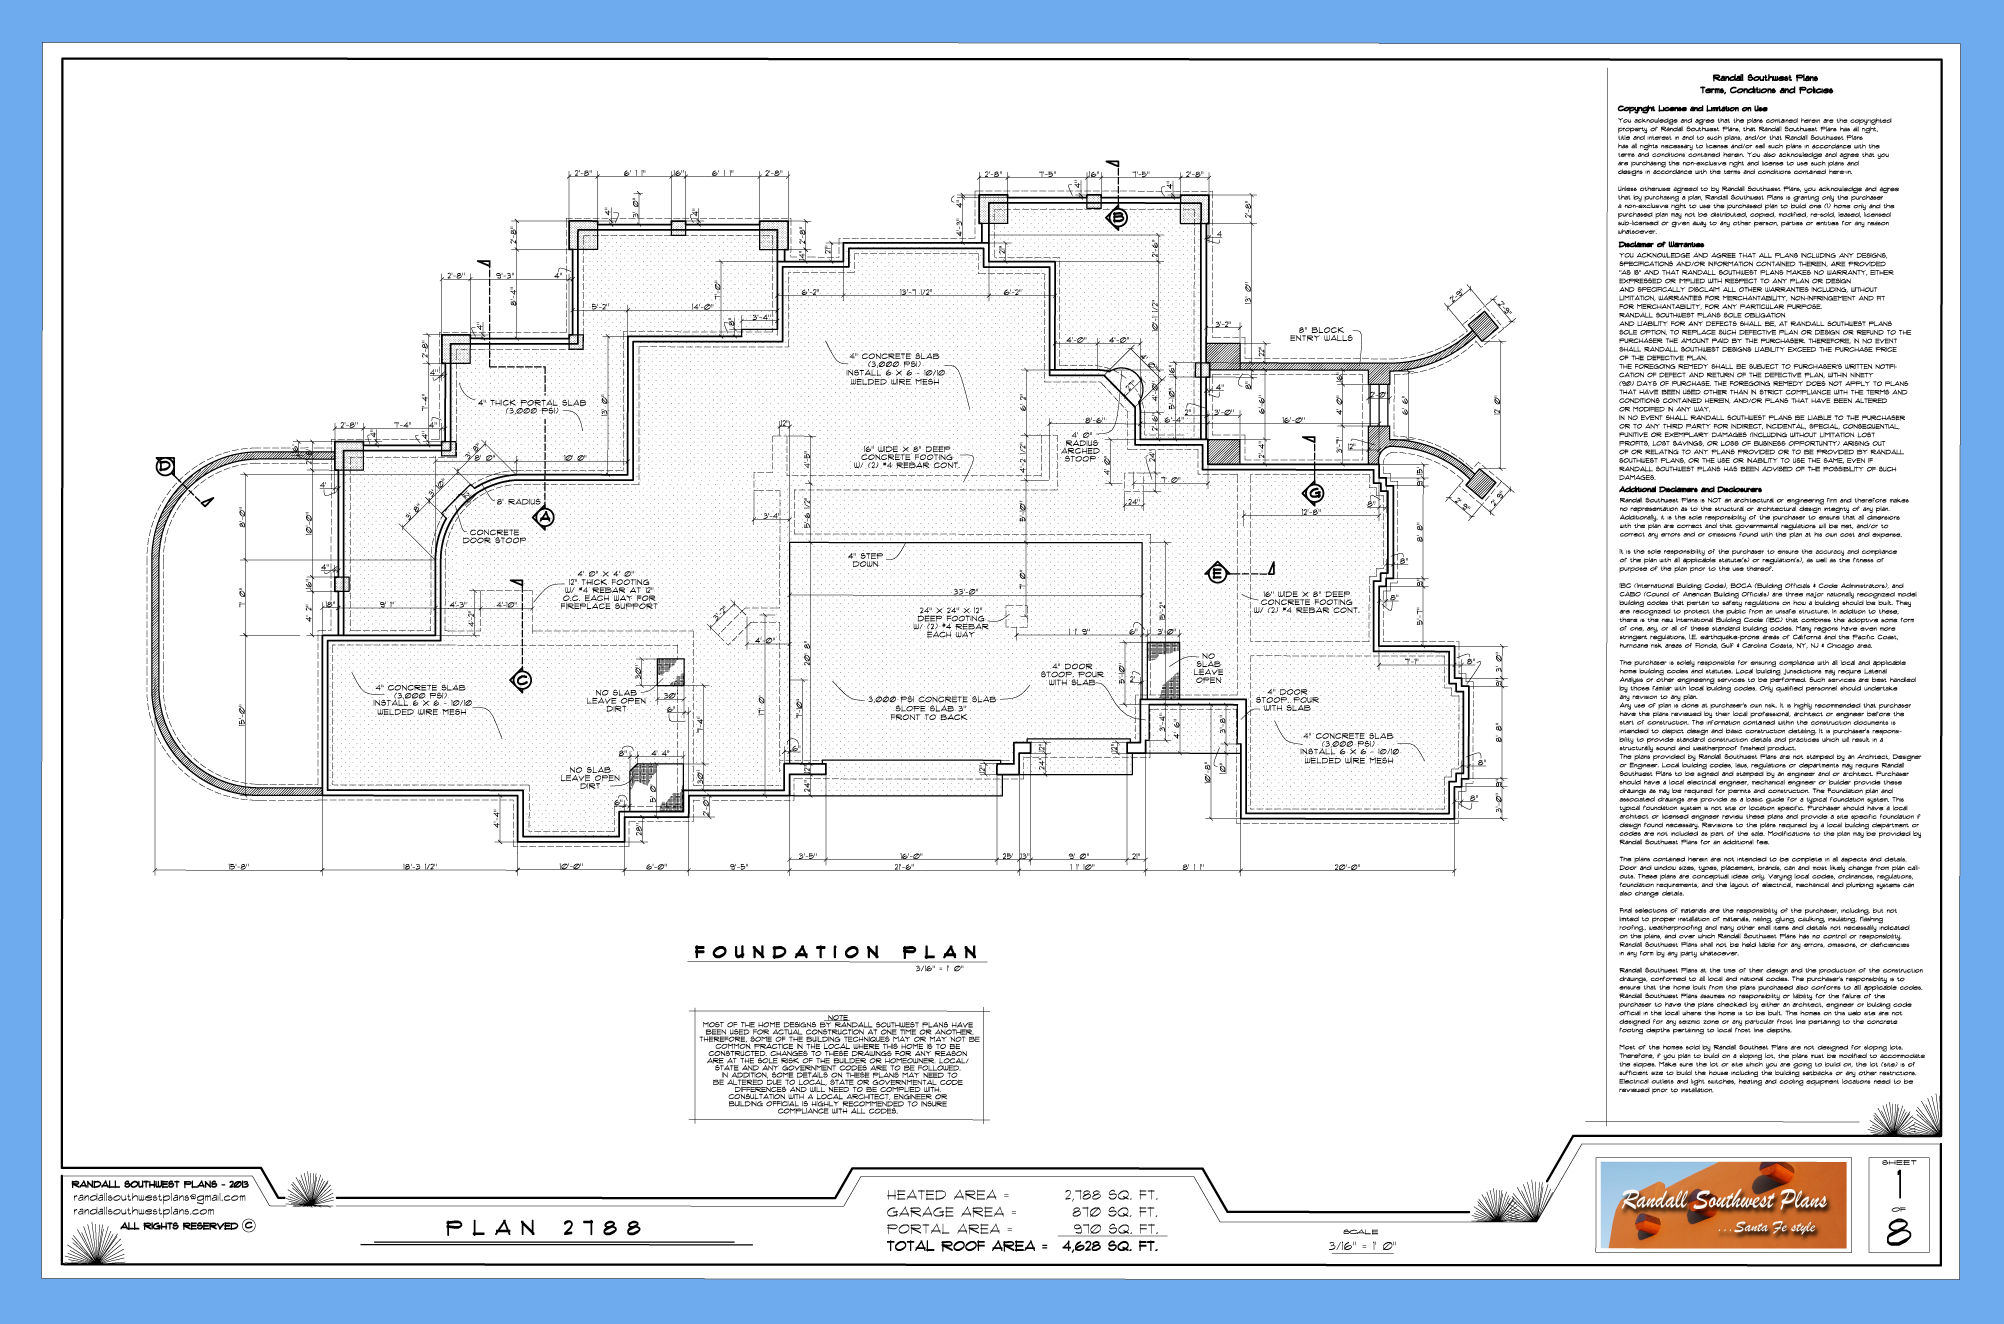 Plans Drawing at GetDrawings.com | Free for personal use ... on floor plans garage, floor plan for transportation company, electrical plan for warehouse, building plans for warehouse, floor plans retail,